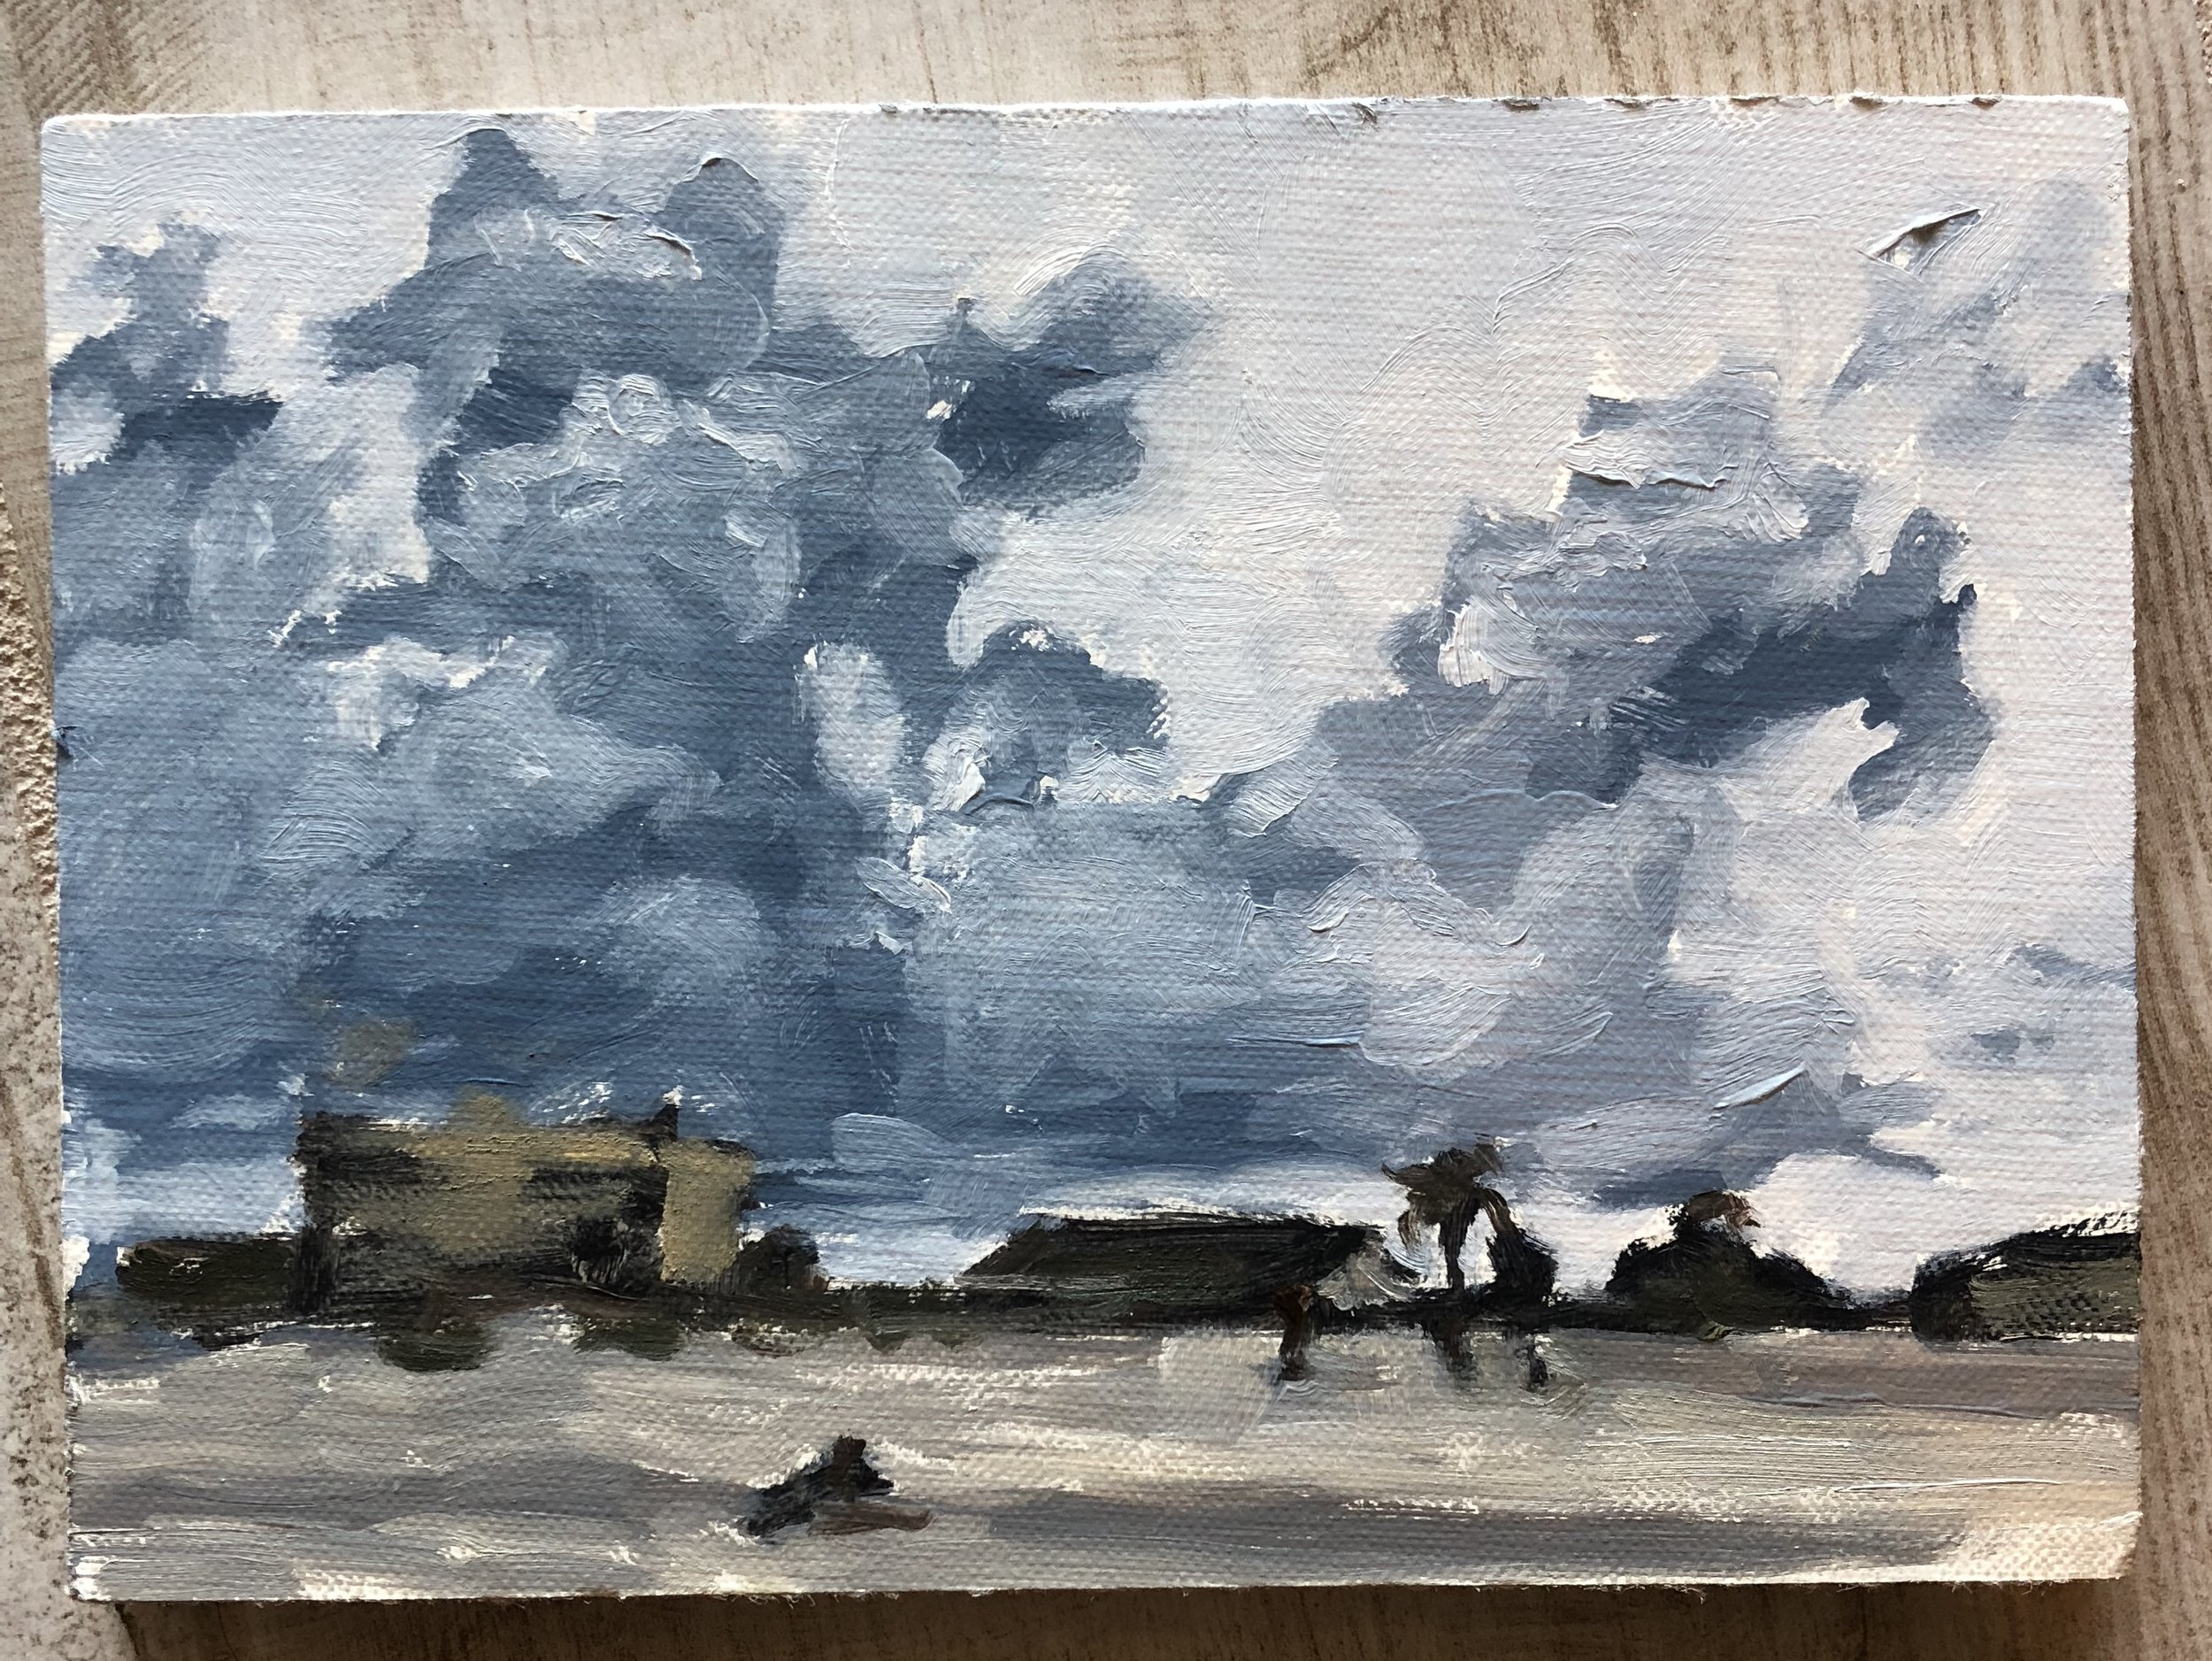 15 July 2018. We just discovered the beach is the only remotely less scorching place to hang on a Saturday morning. Plus it's a great place to run and try to get back in shape. The picture shows a lot more contrast than the painting actually has.